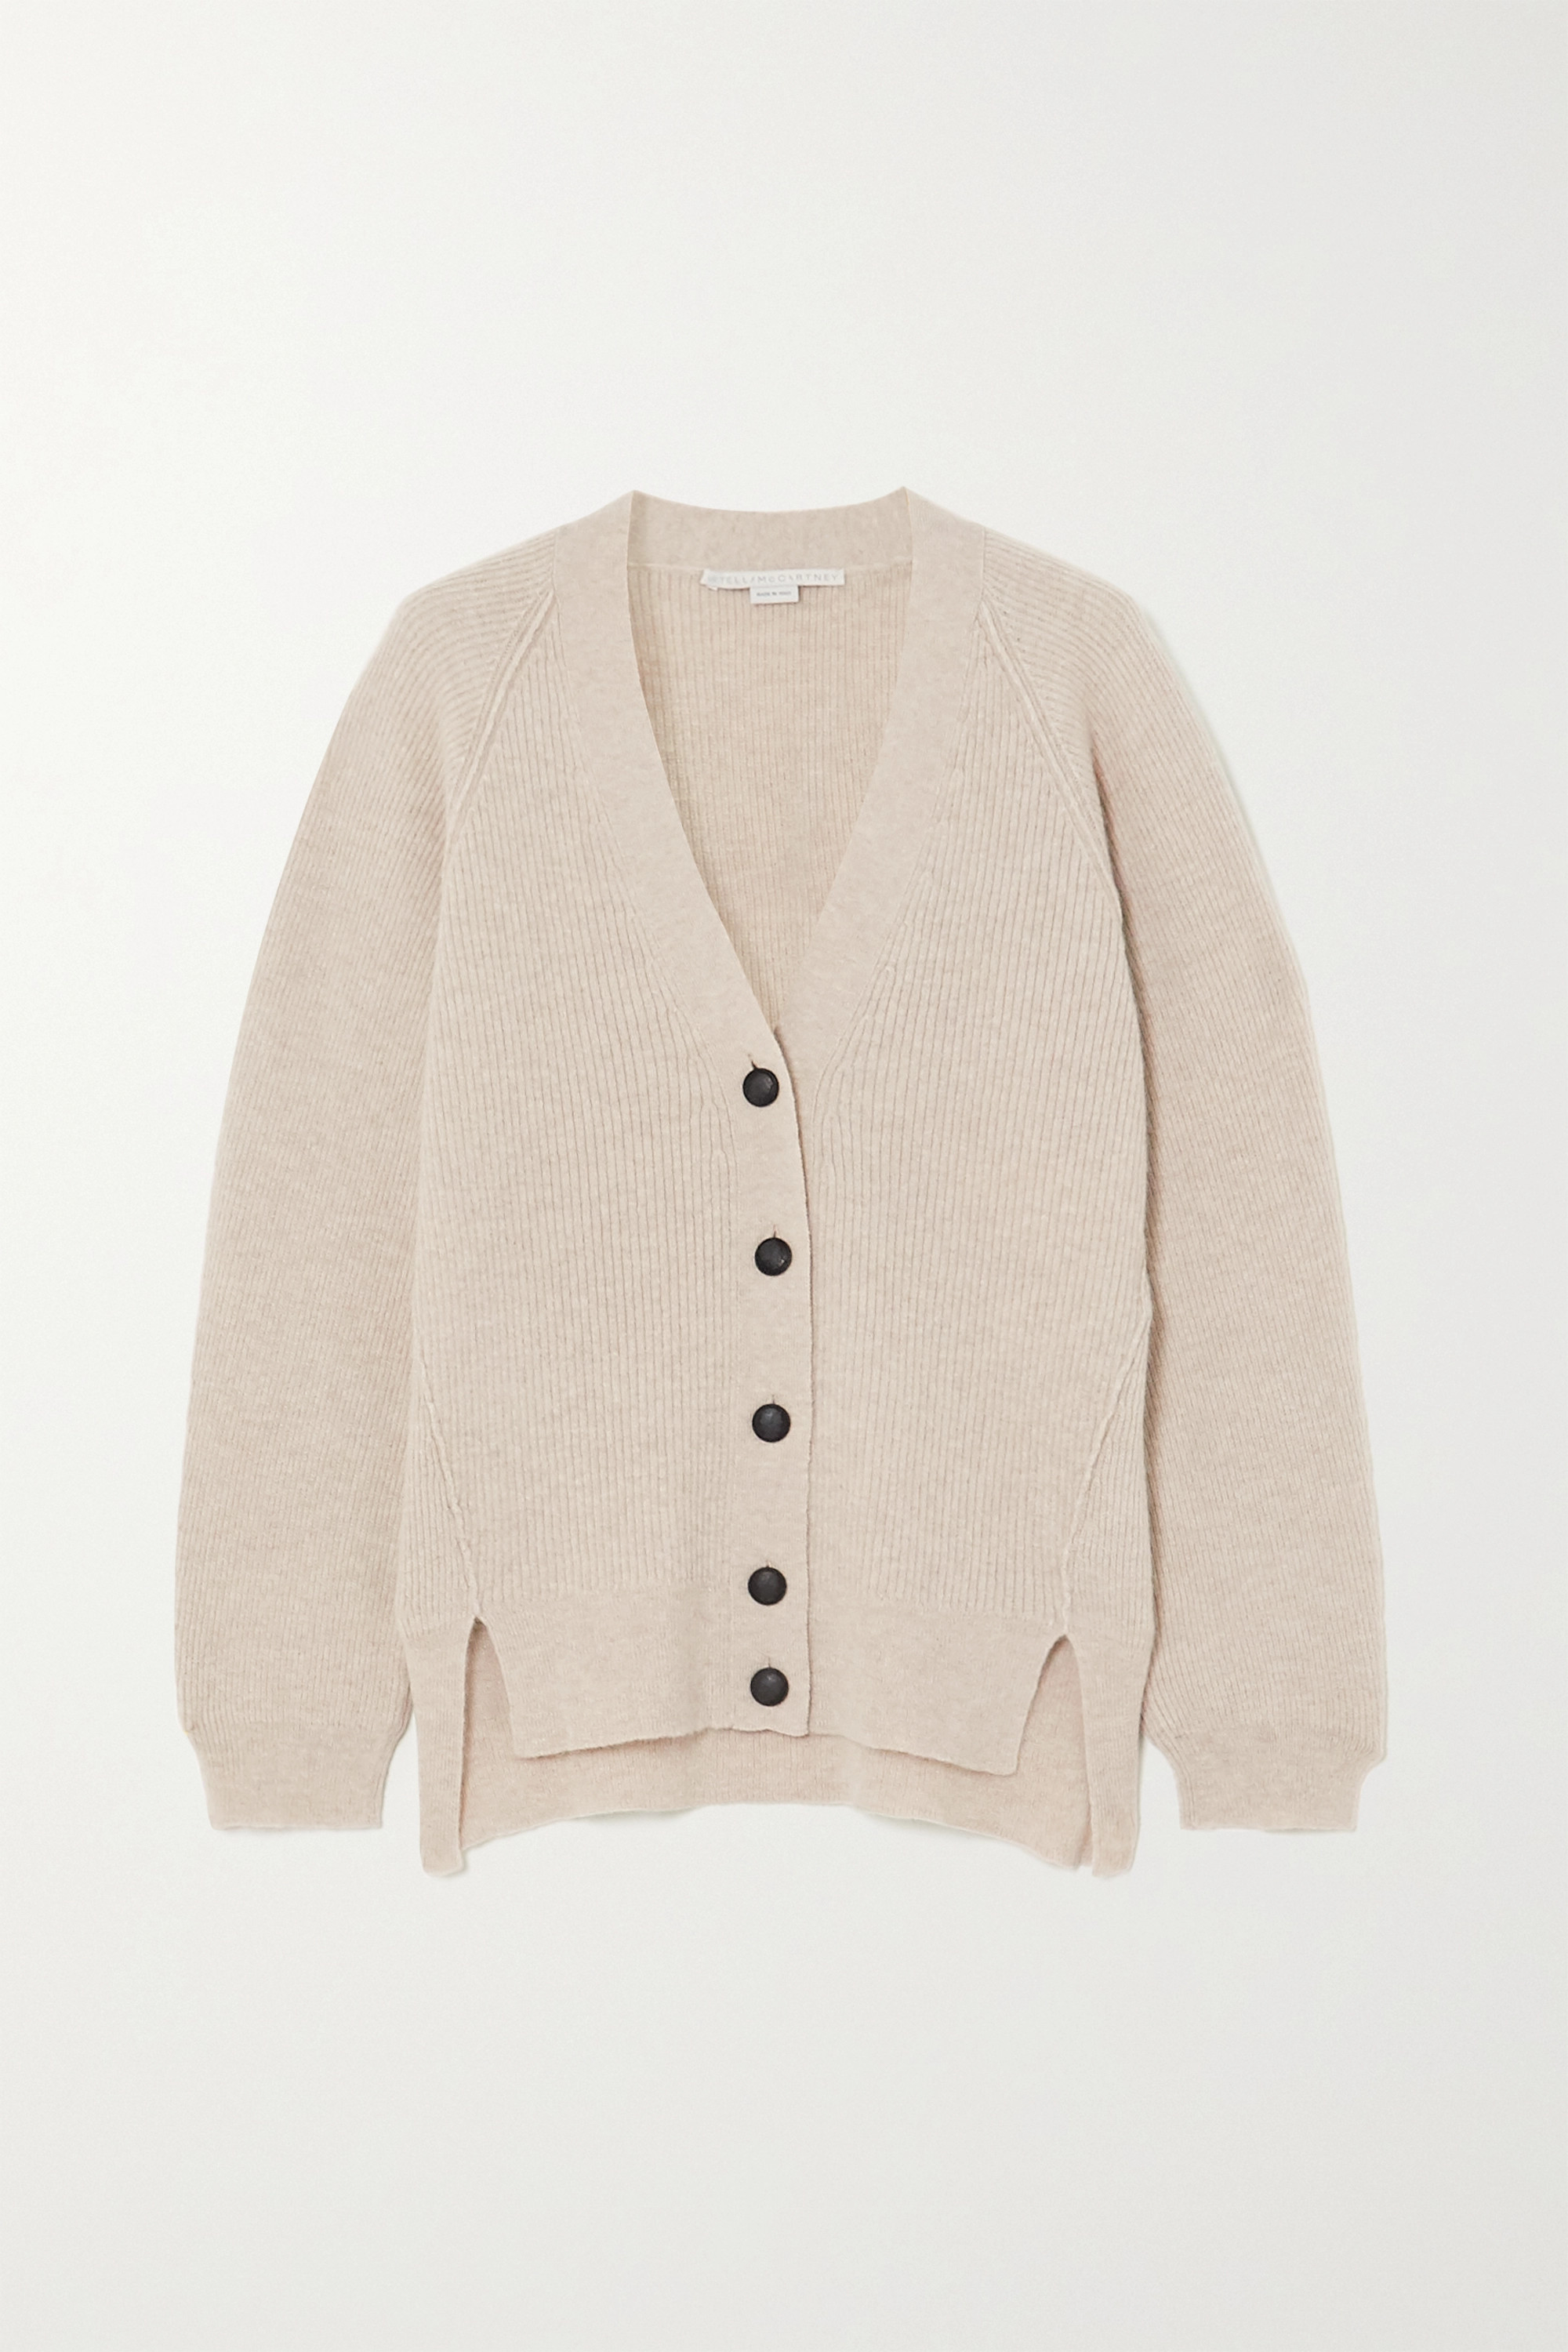 Stella McCartney Ribbed wool and alpaca-blend cardigan